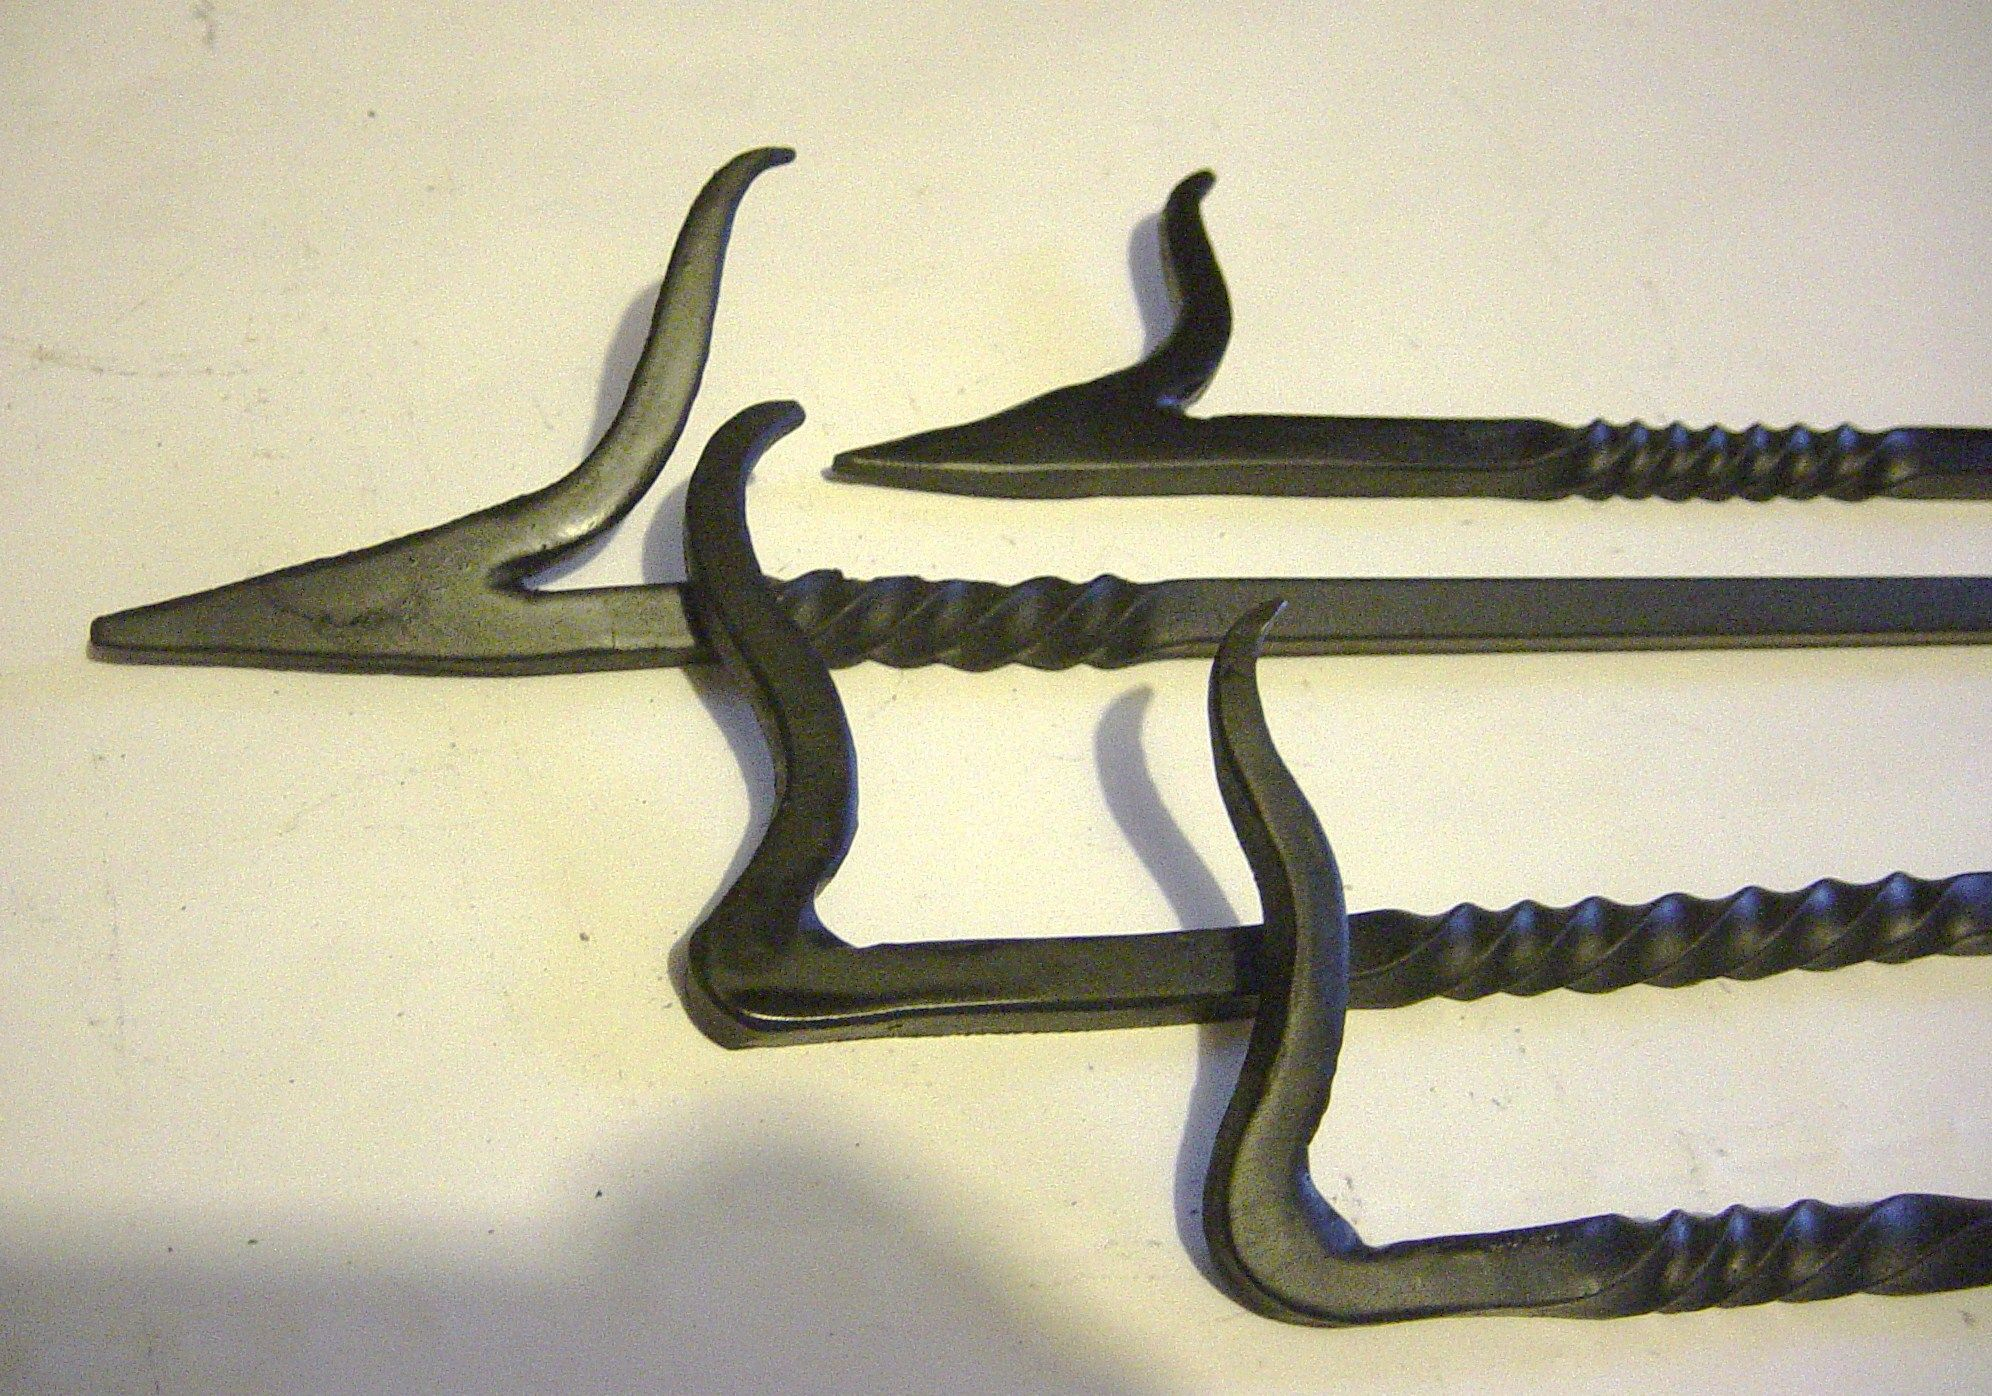 Handmade Fireplace Tools Hand Forged Fire Poker Points My Products Pinterest